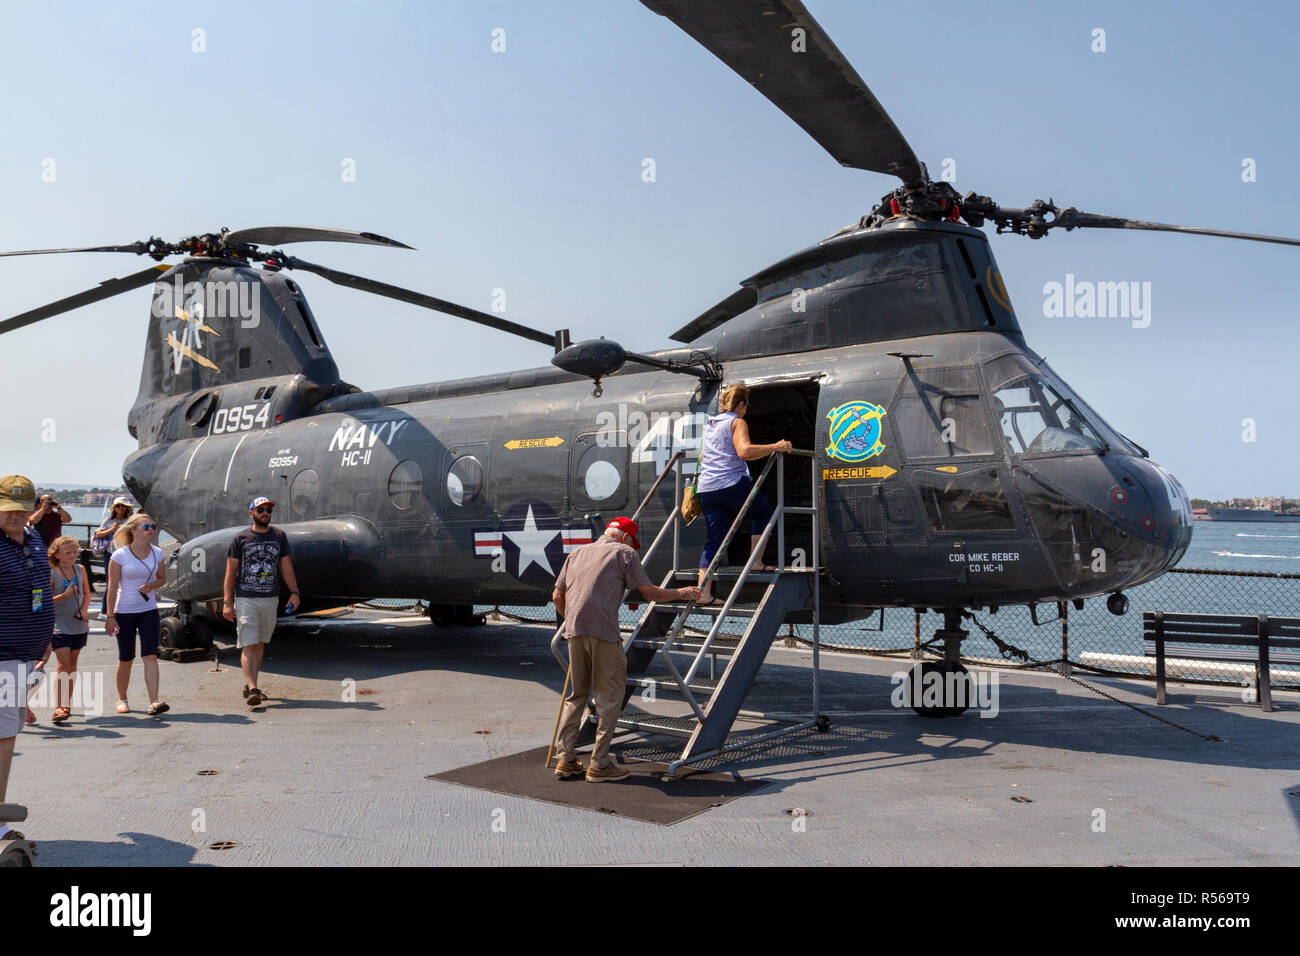 A CH-46 Sea Knight helicopter, USS Midway, San Diego, California, United States. - Stock Image